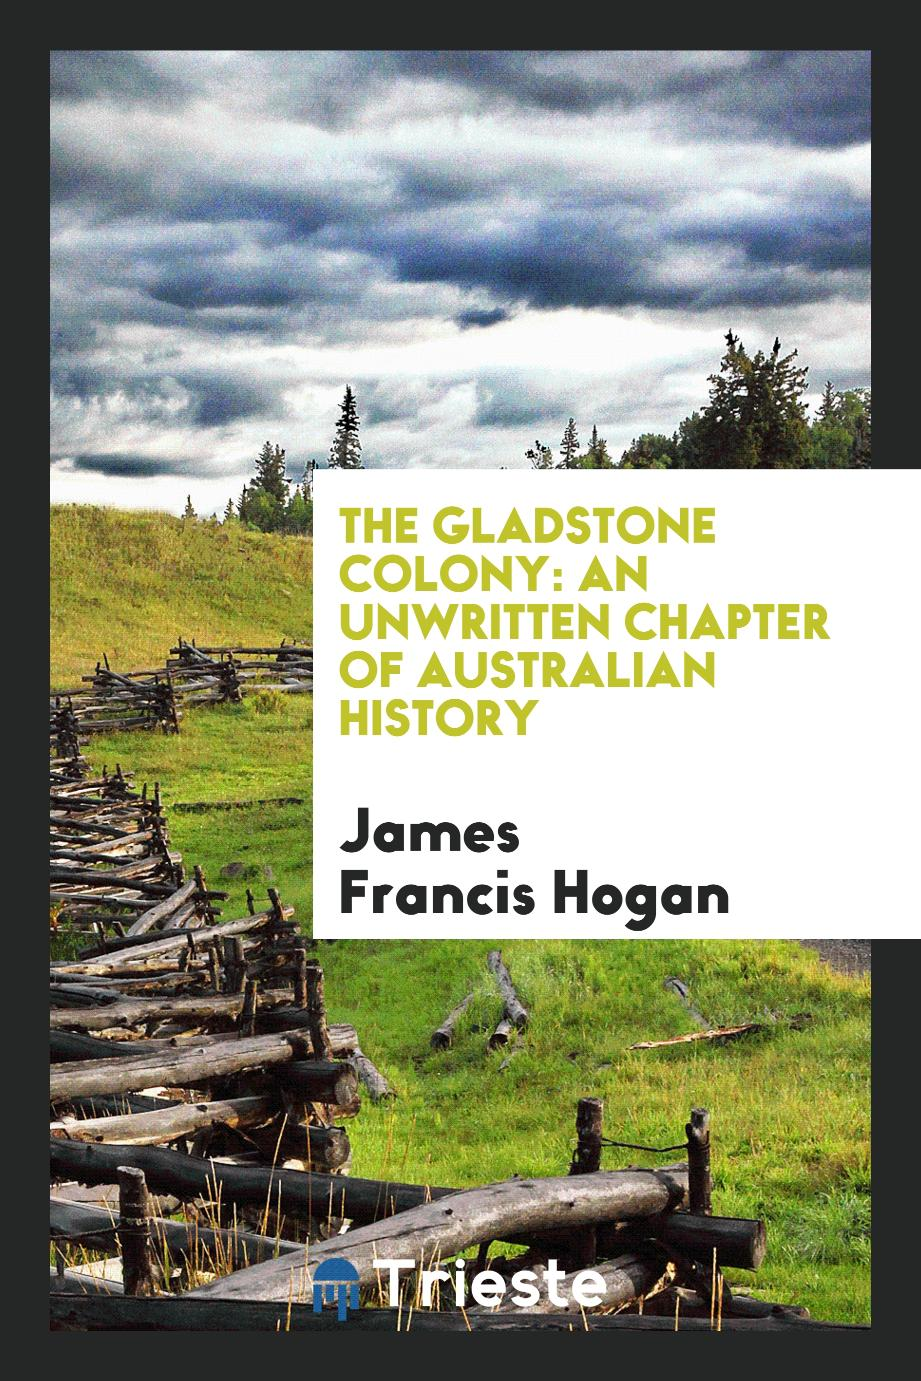 The Gladstone Colony: An Unwritten Chapter of Australian History